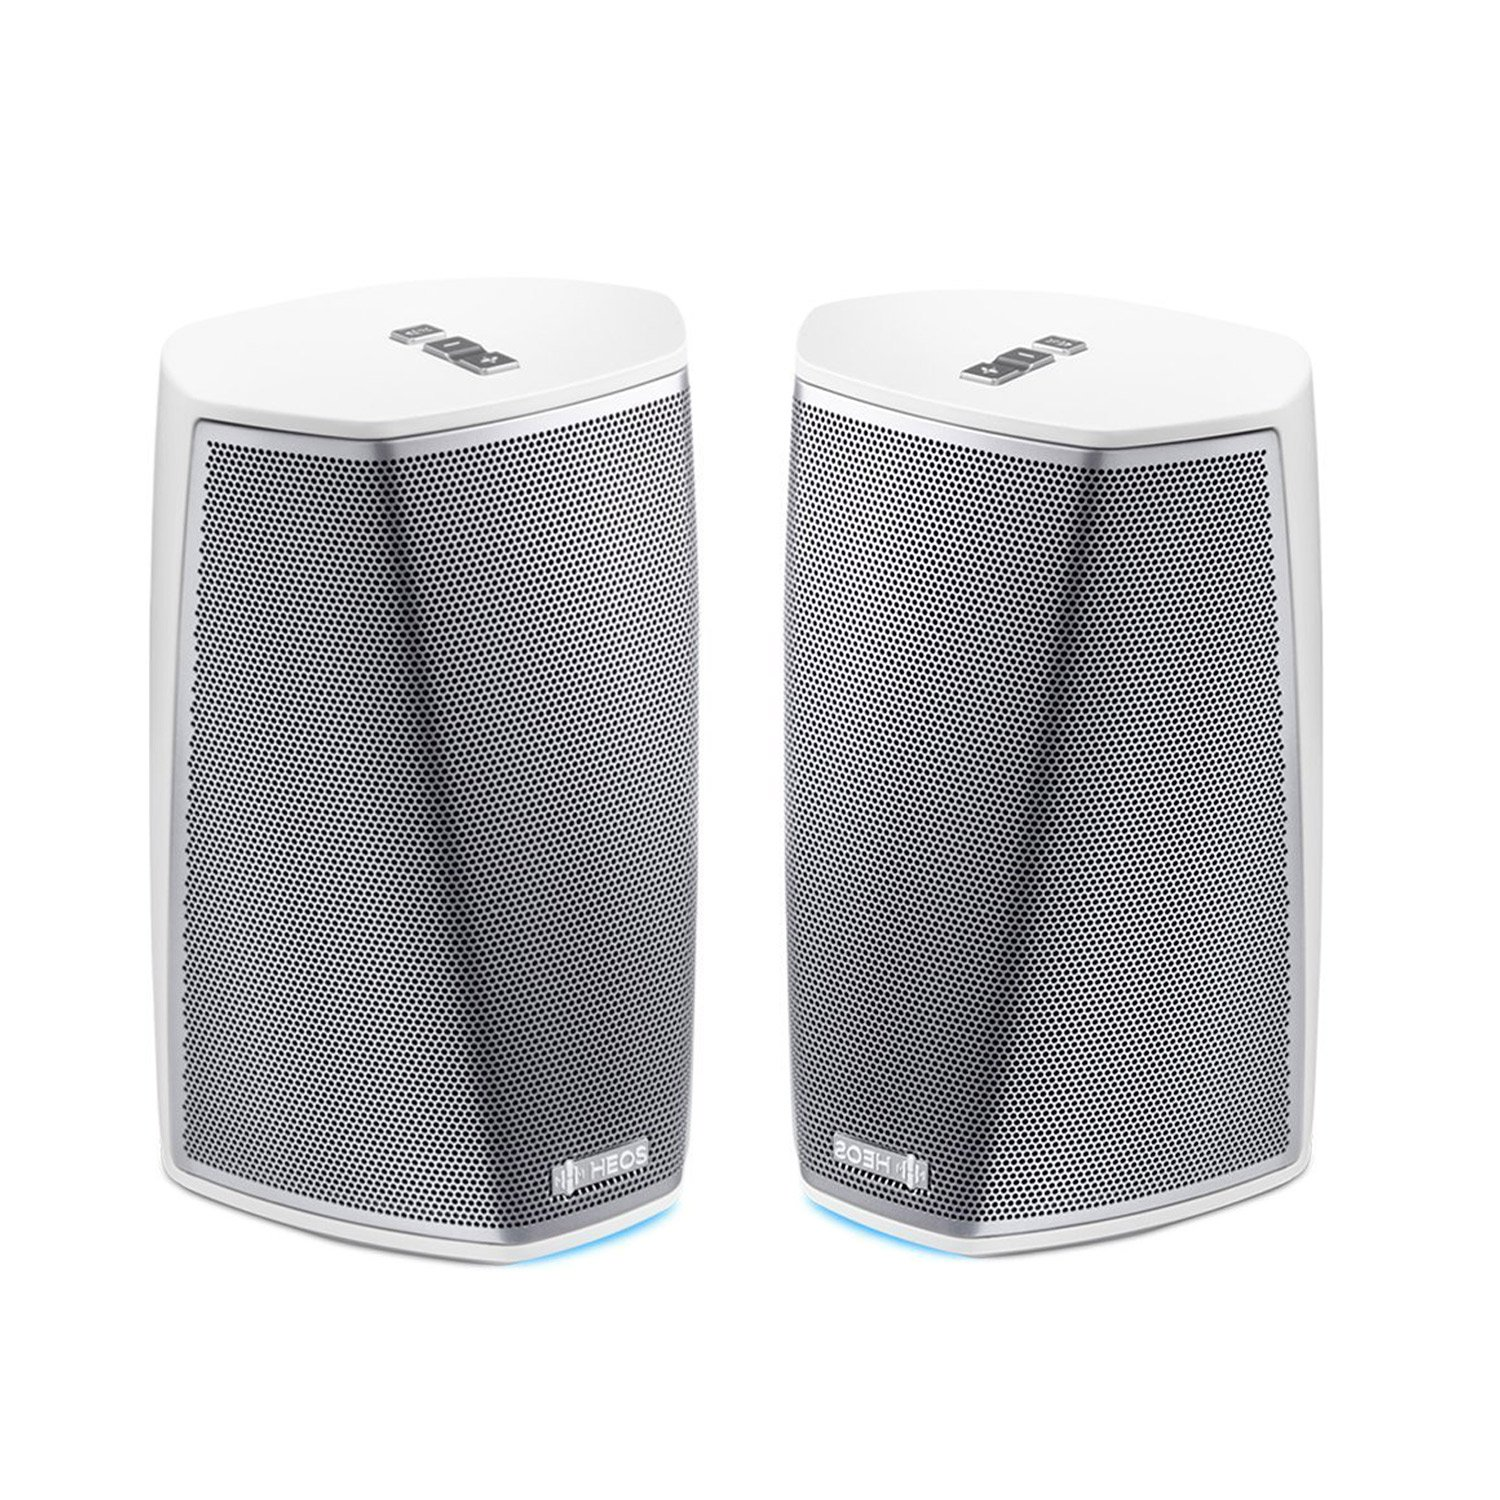 Denon HEOS 1 HS2 WT Compact Portable Wireless Speaker System (Pair) Bundle with WiFi & Bluetooth Wireless Connectivity, Class D Amplifiers & HEOS App in White